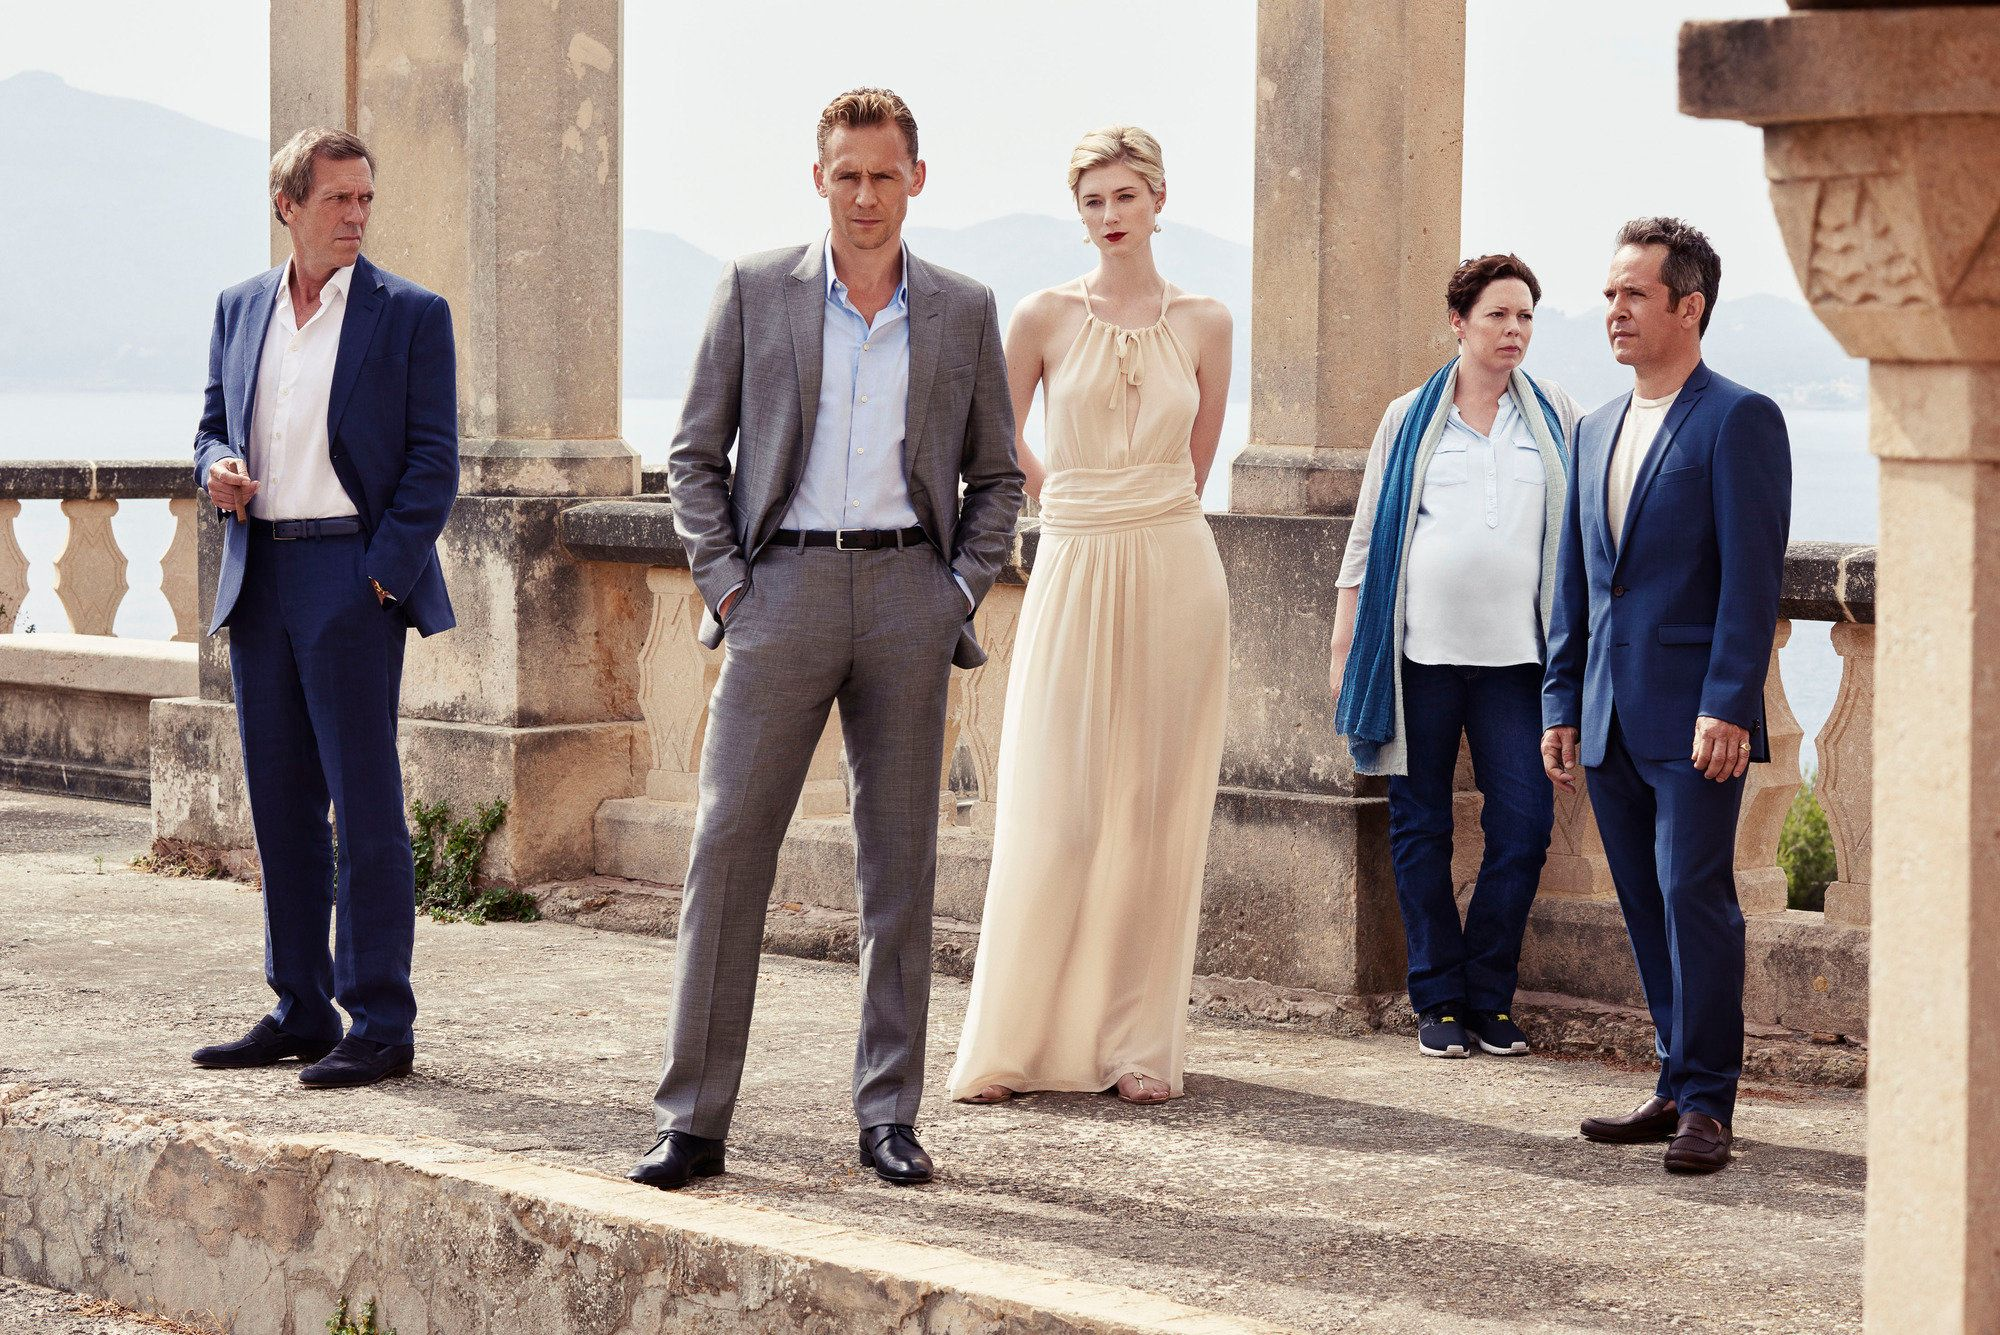 'The Night Manager' reached its thrilling conclusion on